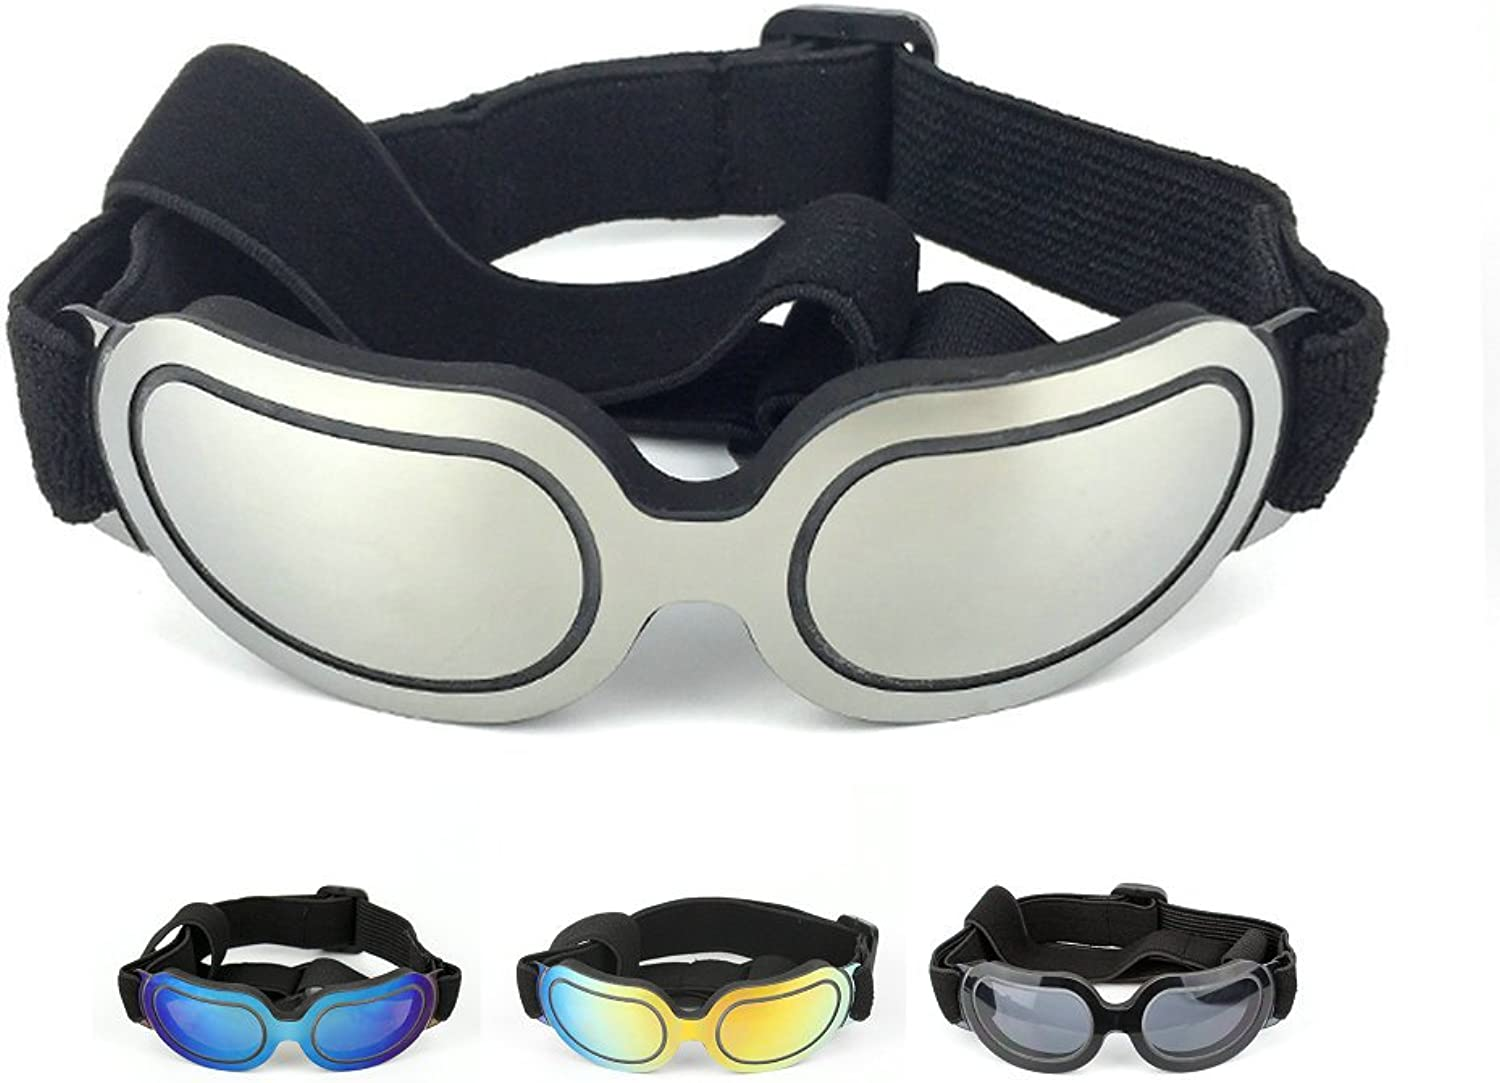 Petvins Doggie Goggles Dog Sunglasses Fashion Pet Eyewear UV Predection Waterproof for Cat Doggy Puppy Small Silver